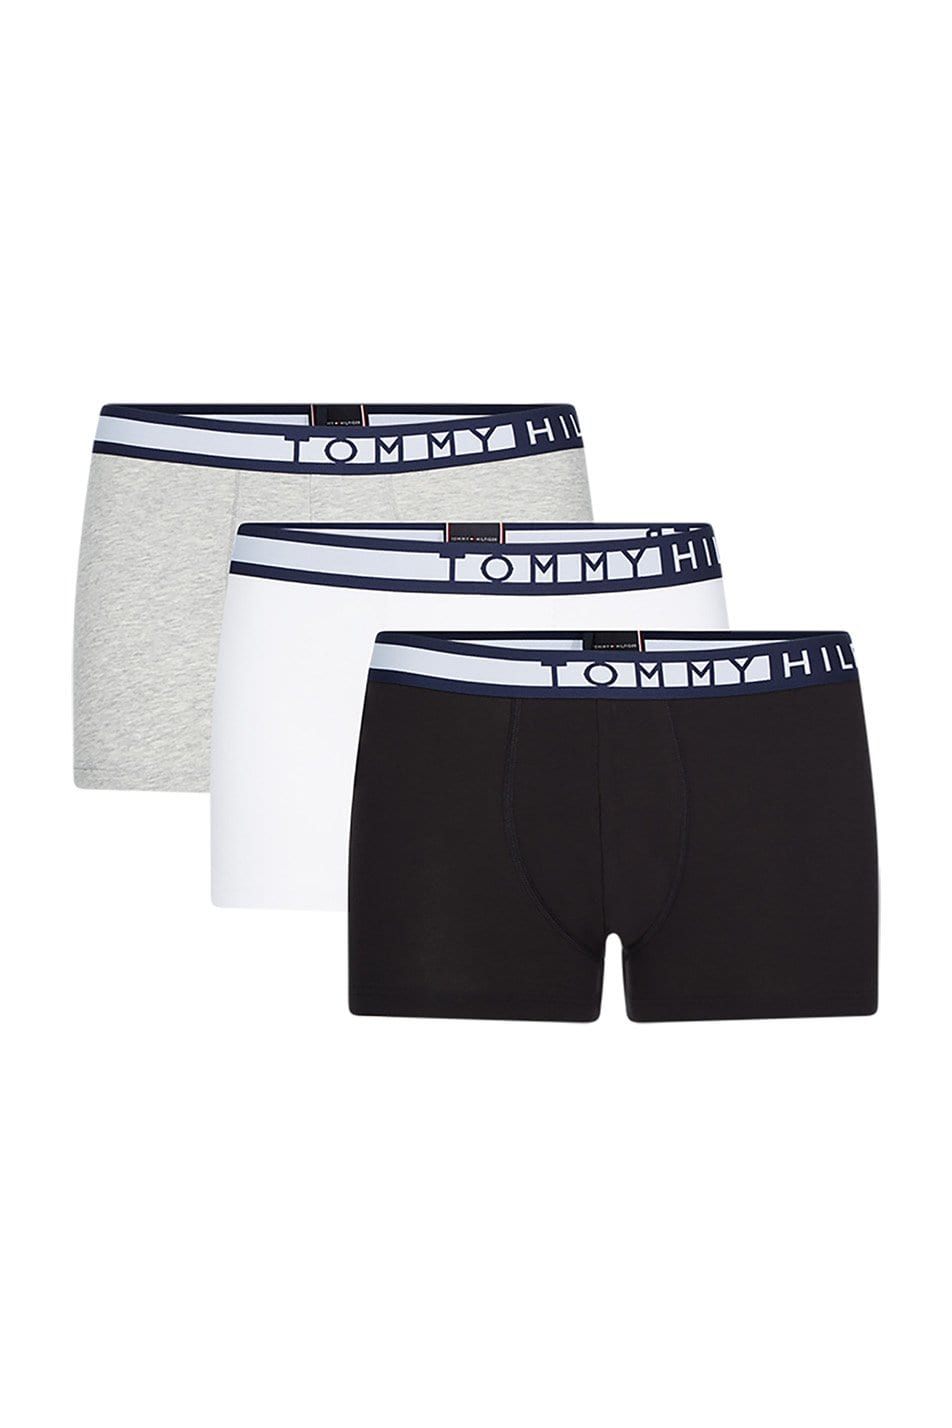 Tommy Hilfiger 3 Pack Logo Trunk Boxers